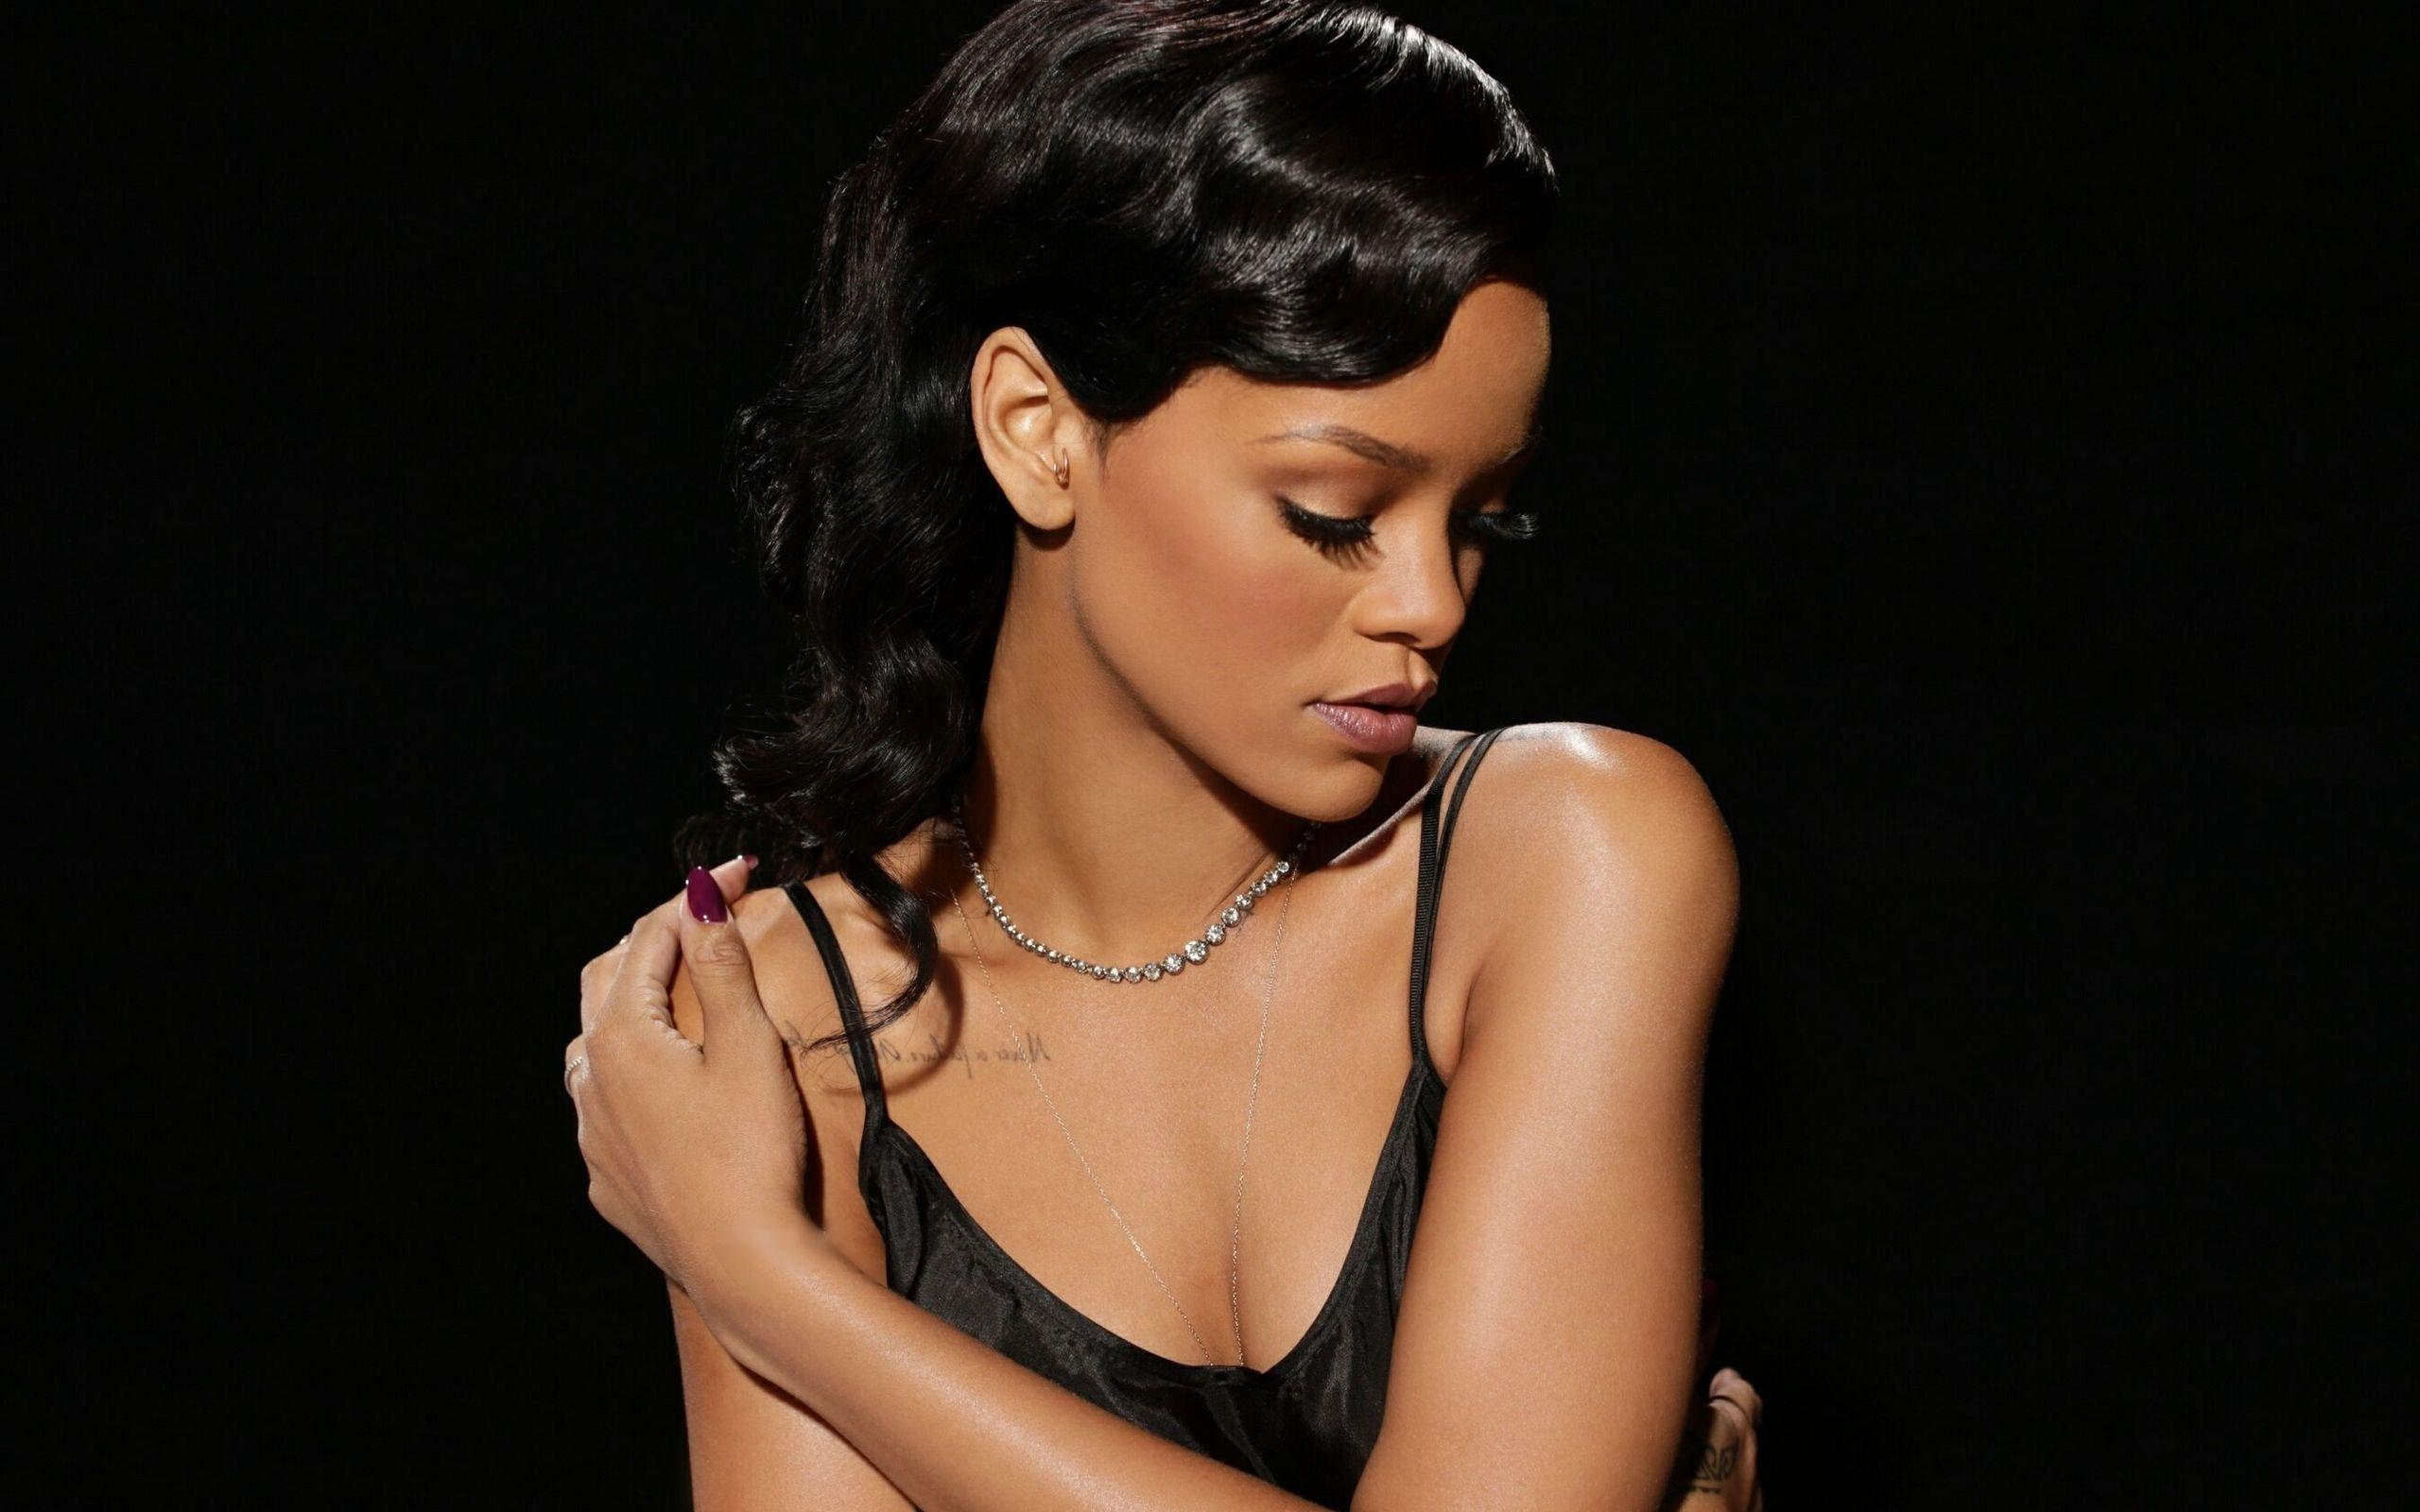 Rihanna Wallpapers, Pictures, Image